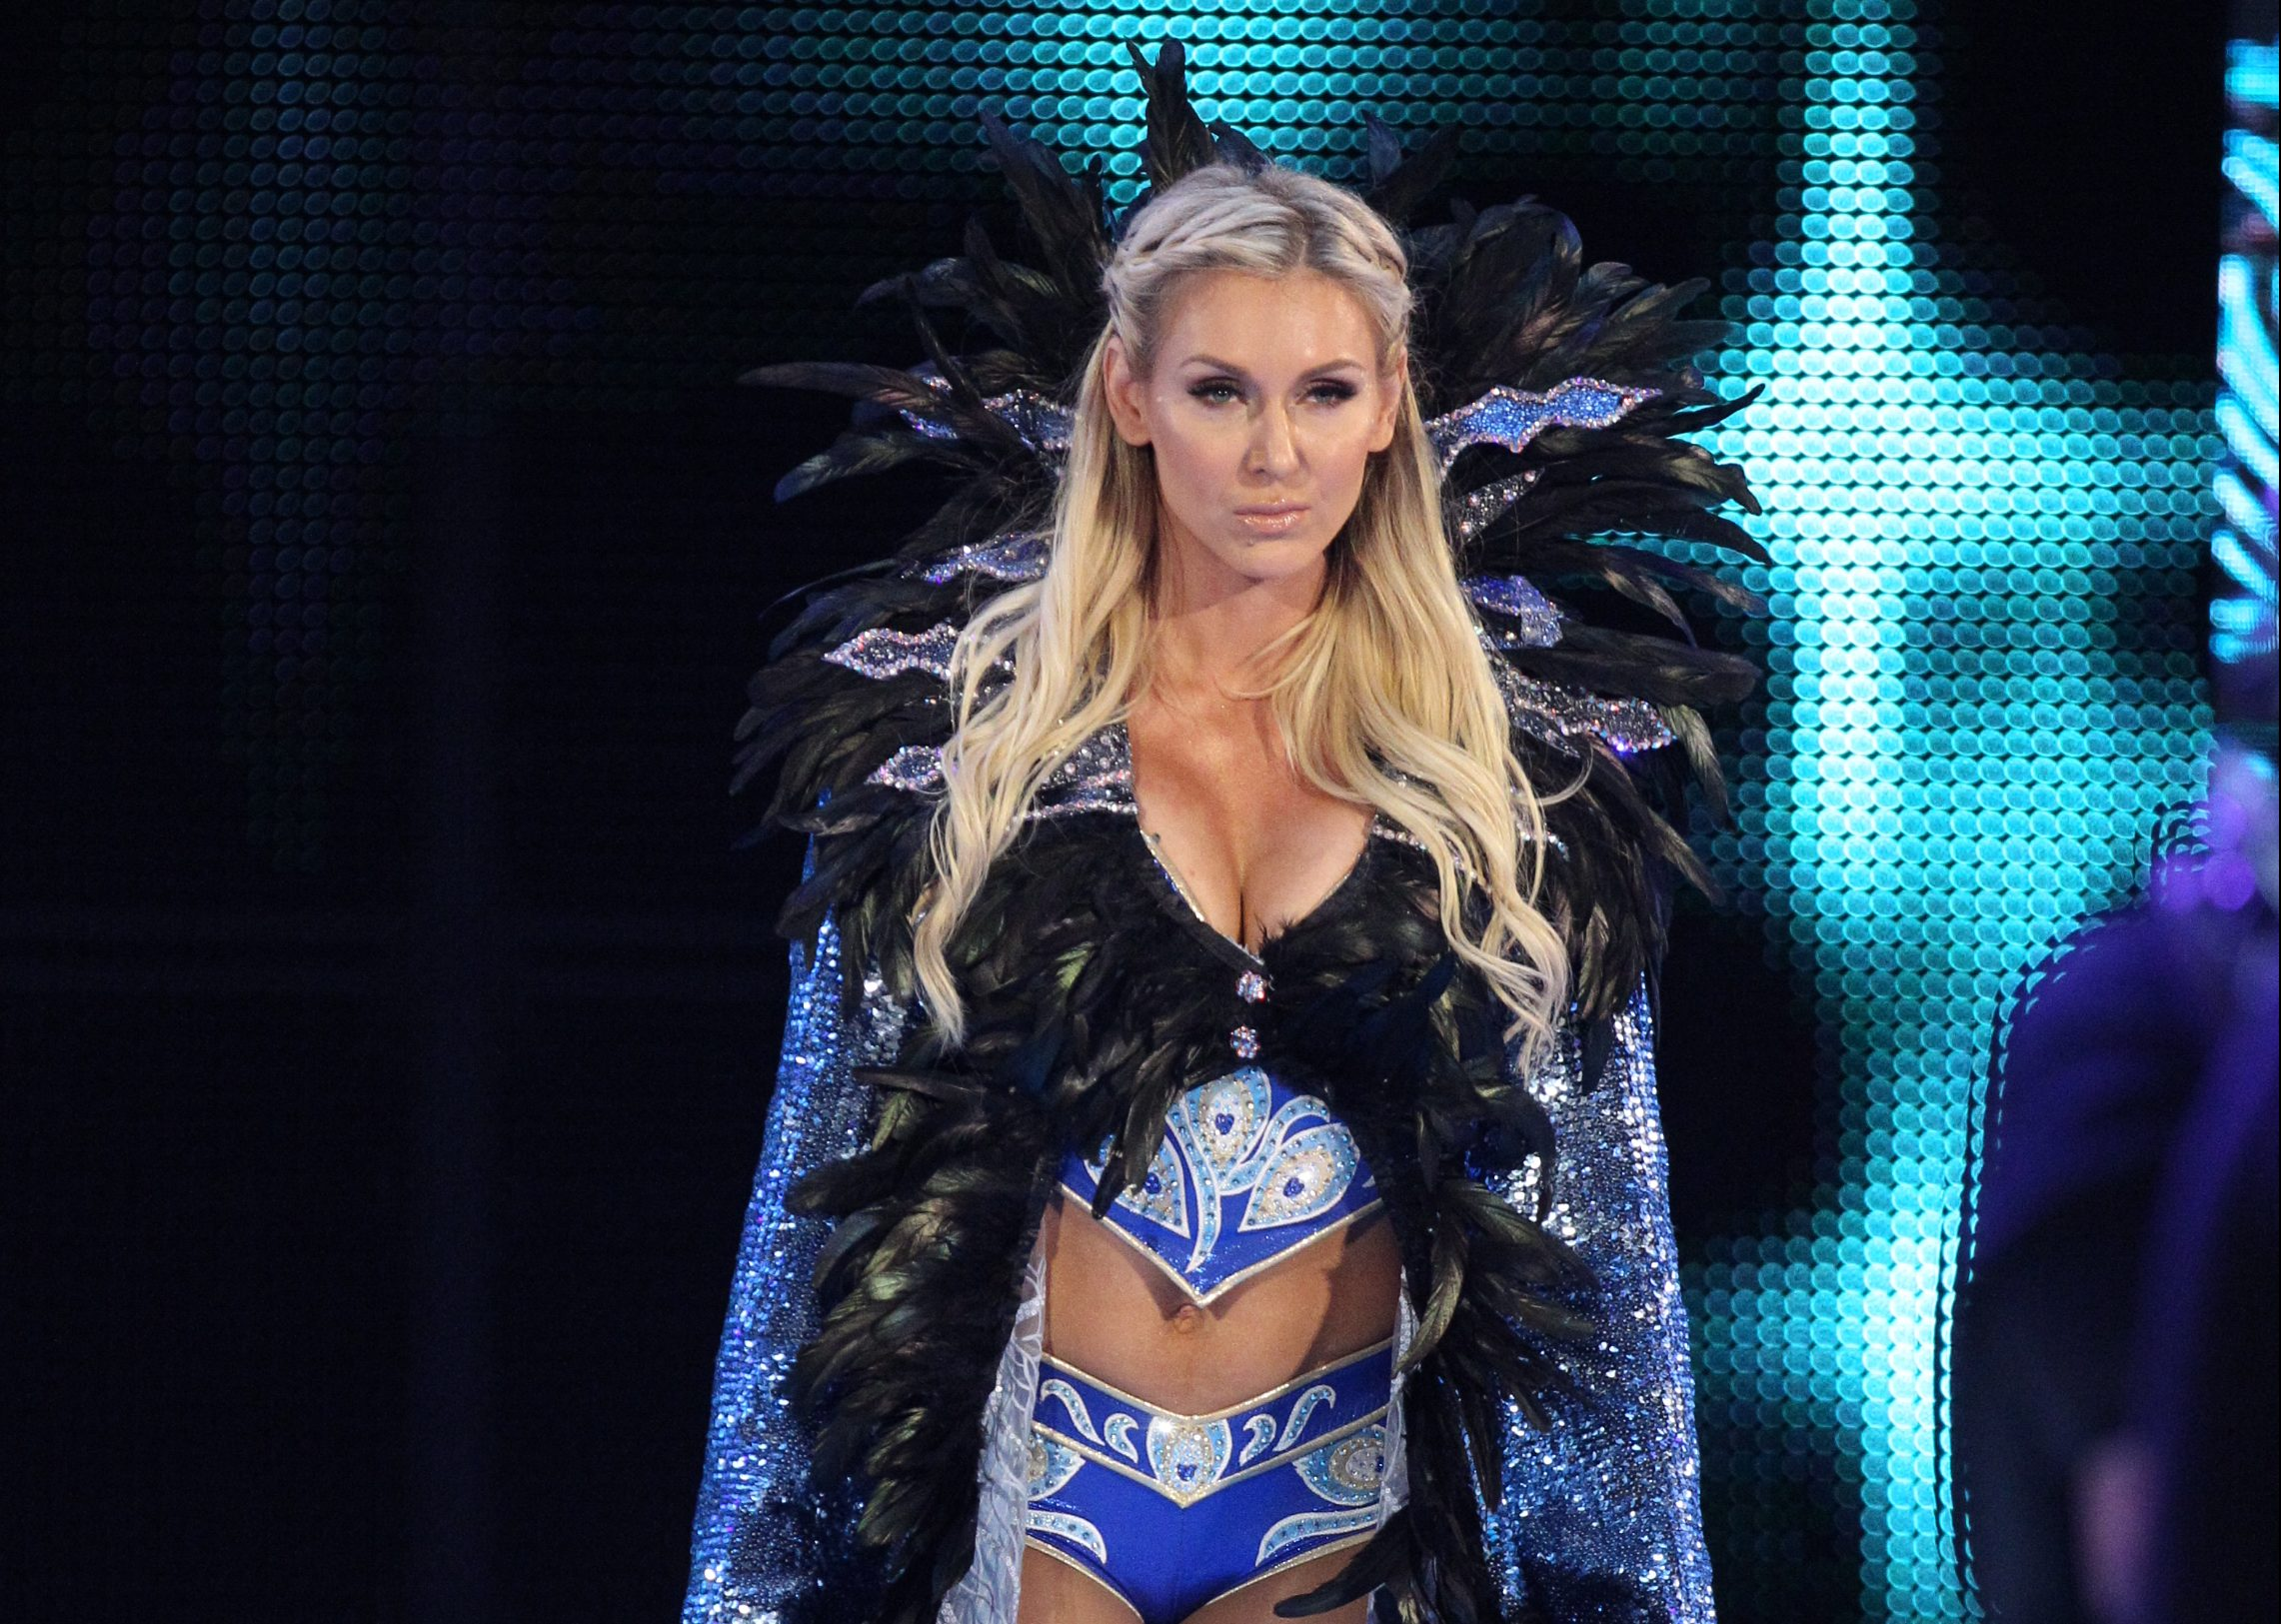 Charlotte Flair Reveals Why Shes Taking Time Off From WWE